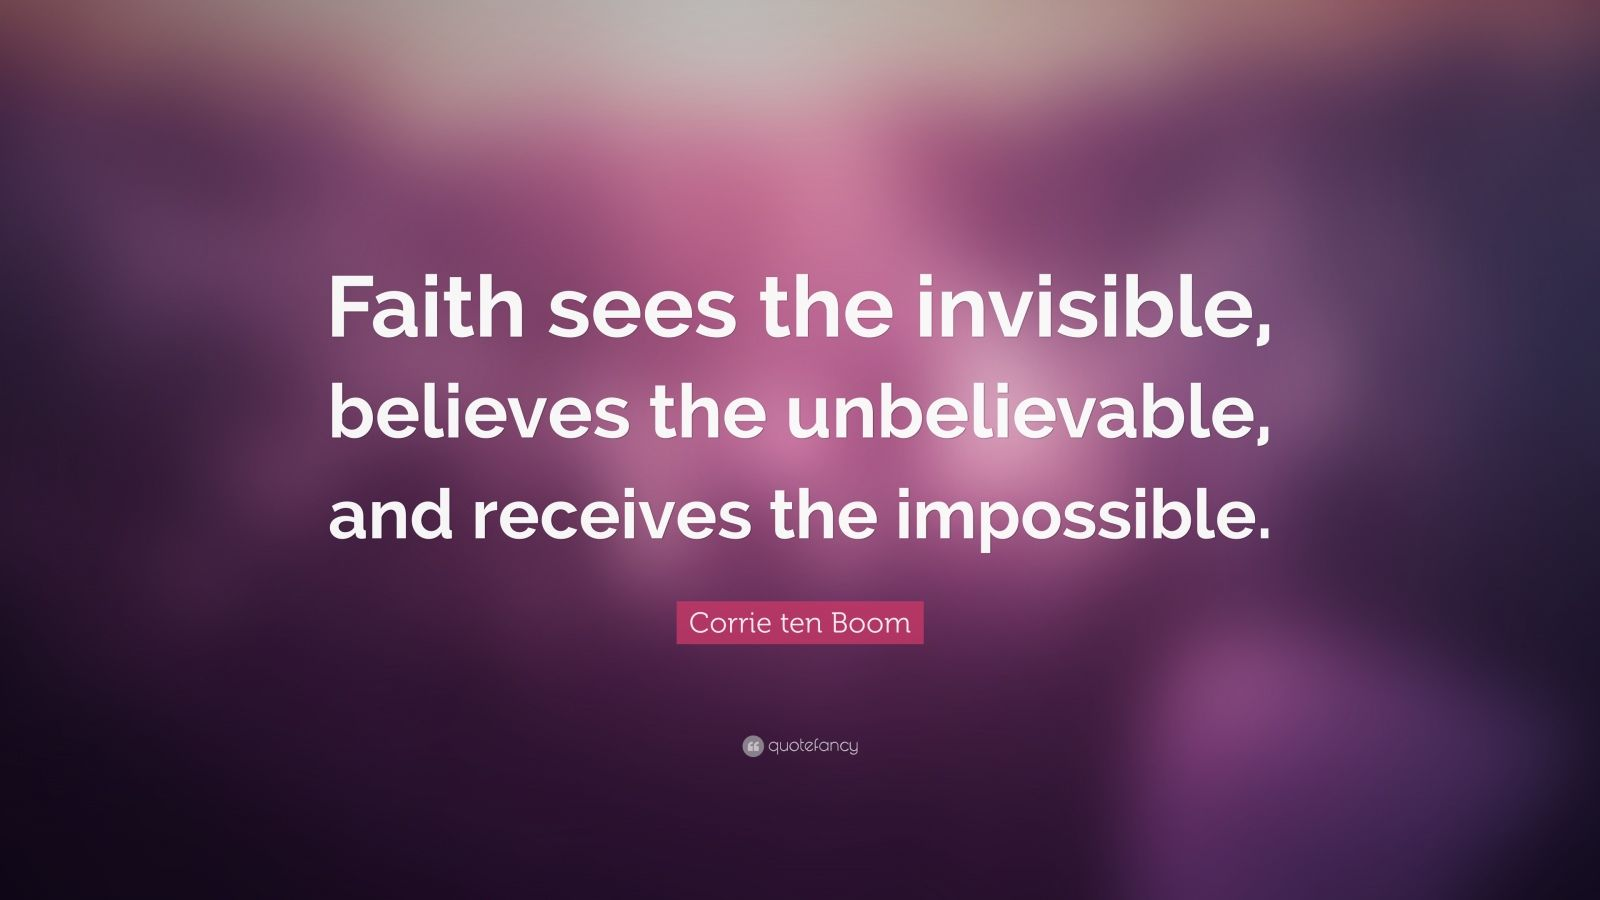 "Corrie ten Boom Quote: ""Faith sees the invisible, believes the unbelievable, and receives the impossible."""